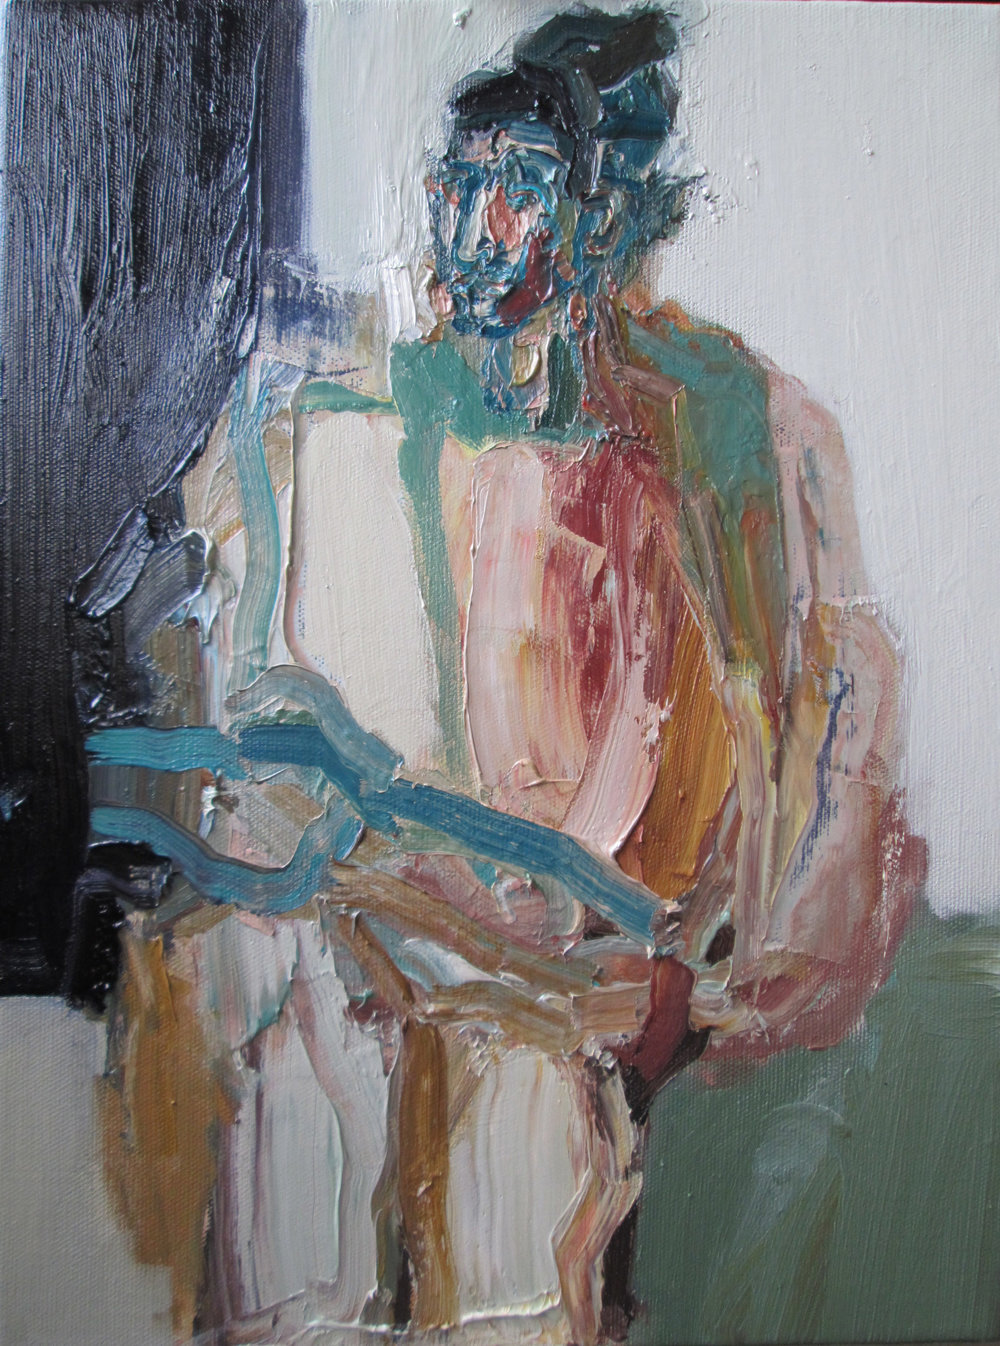 Artist: Victoria Kiff  Title: The Hand Paces  Size: 45 x 35 cm  Medium: Oil on linen  Price: £800   Buy Now